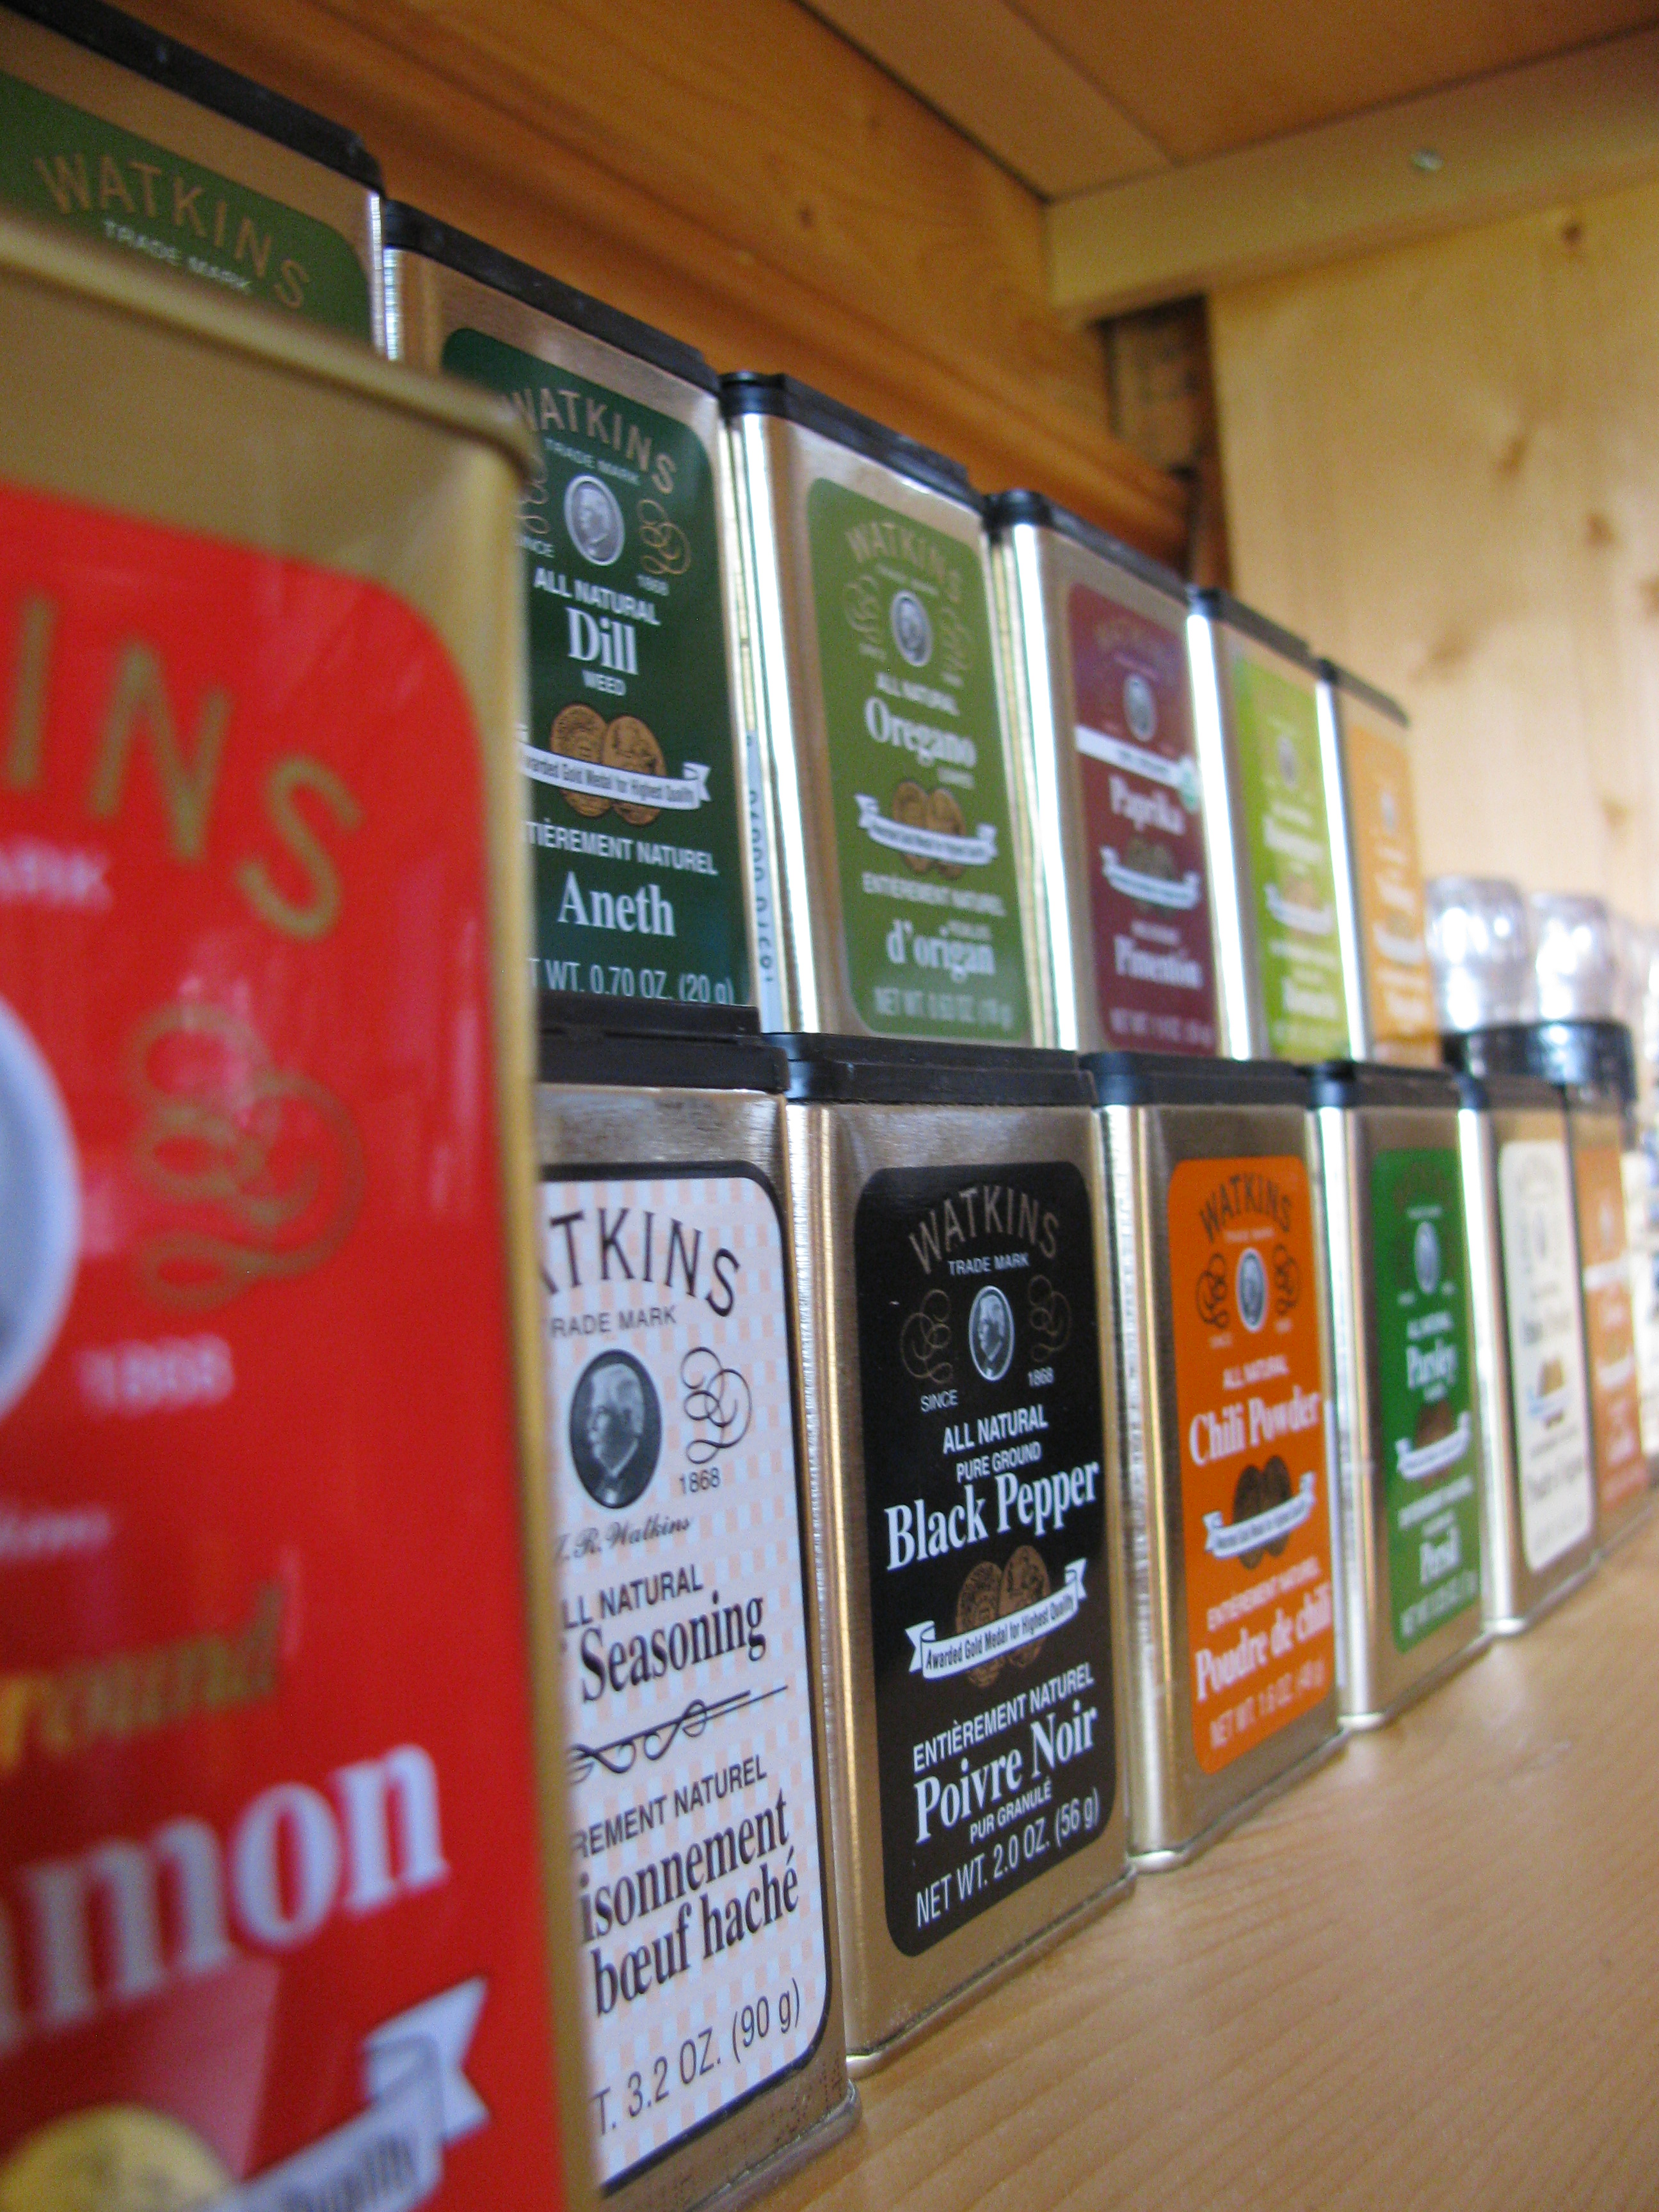 Selection of Watkins spices.